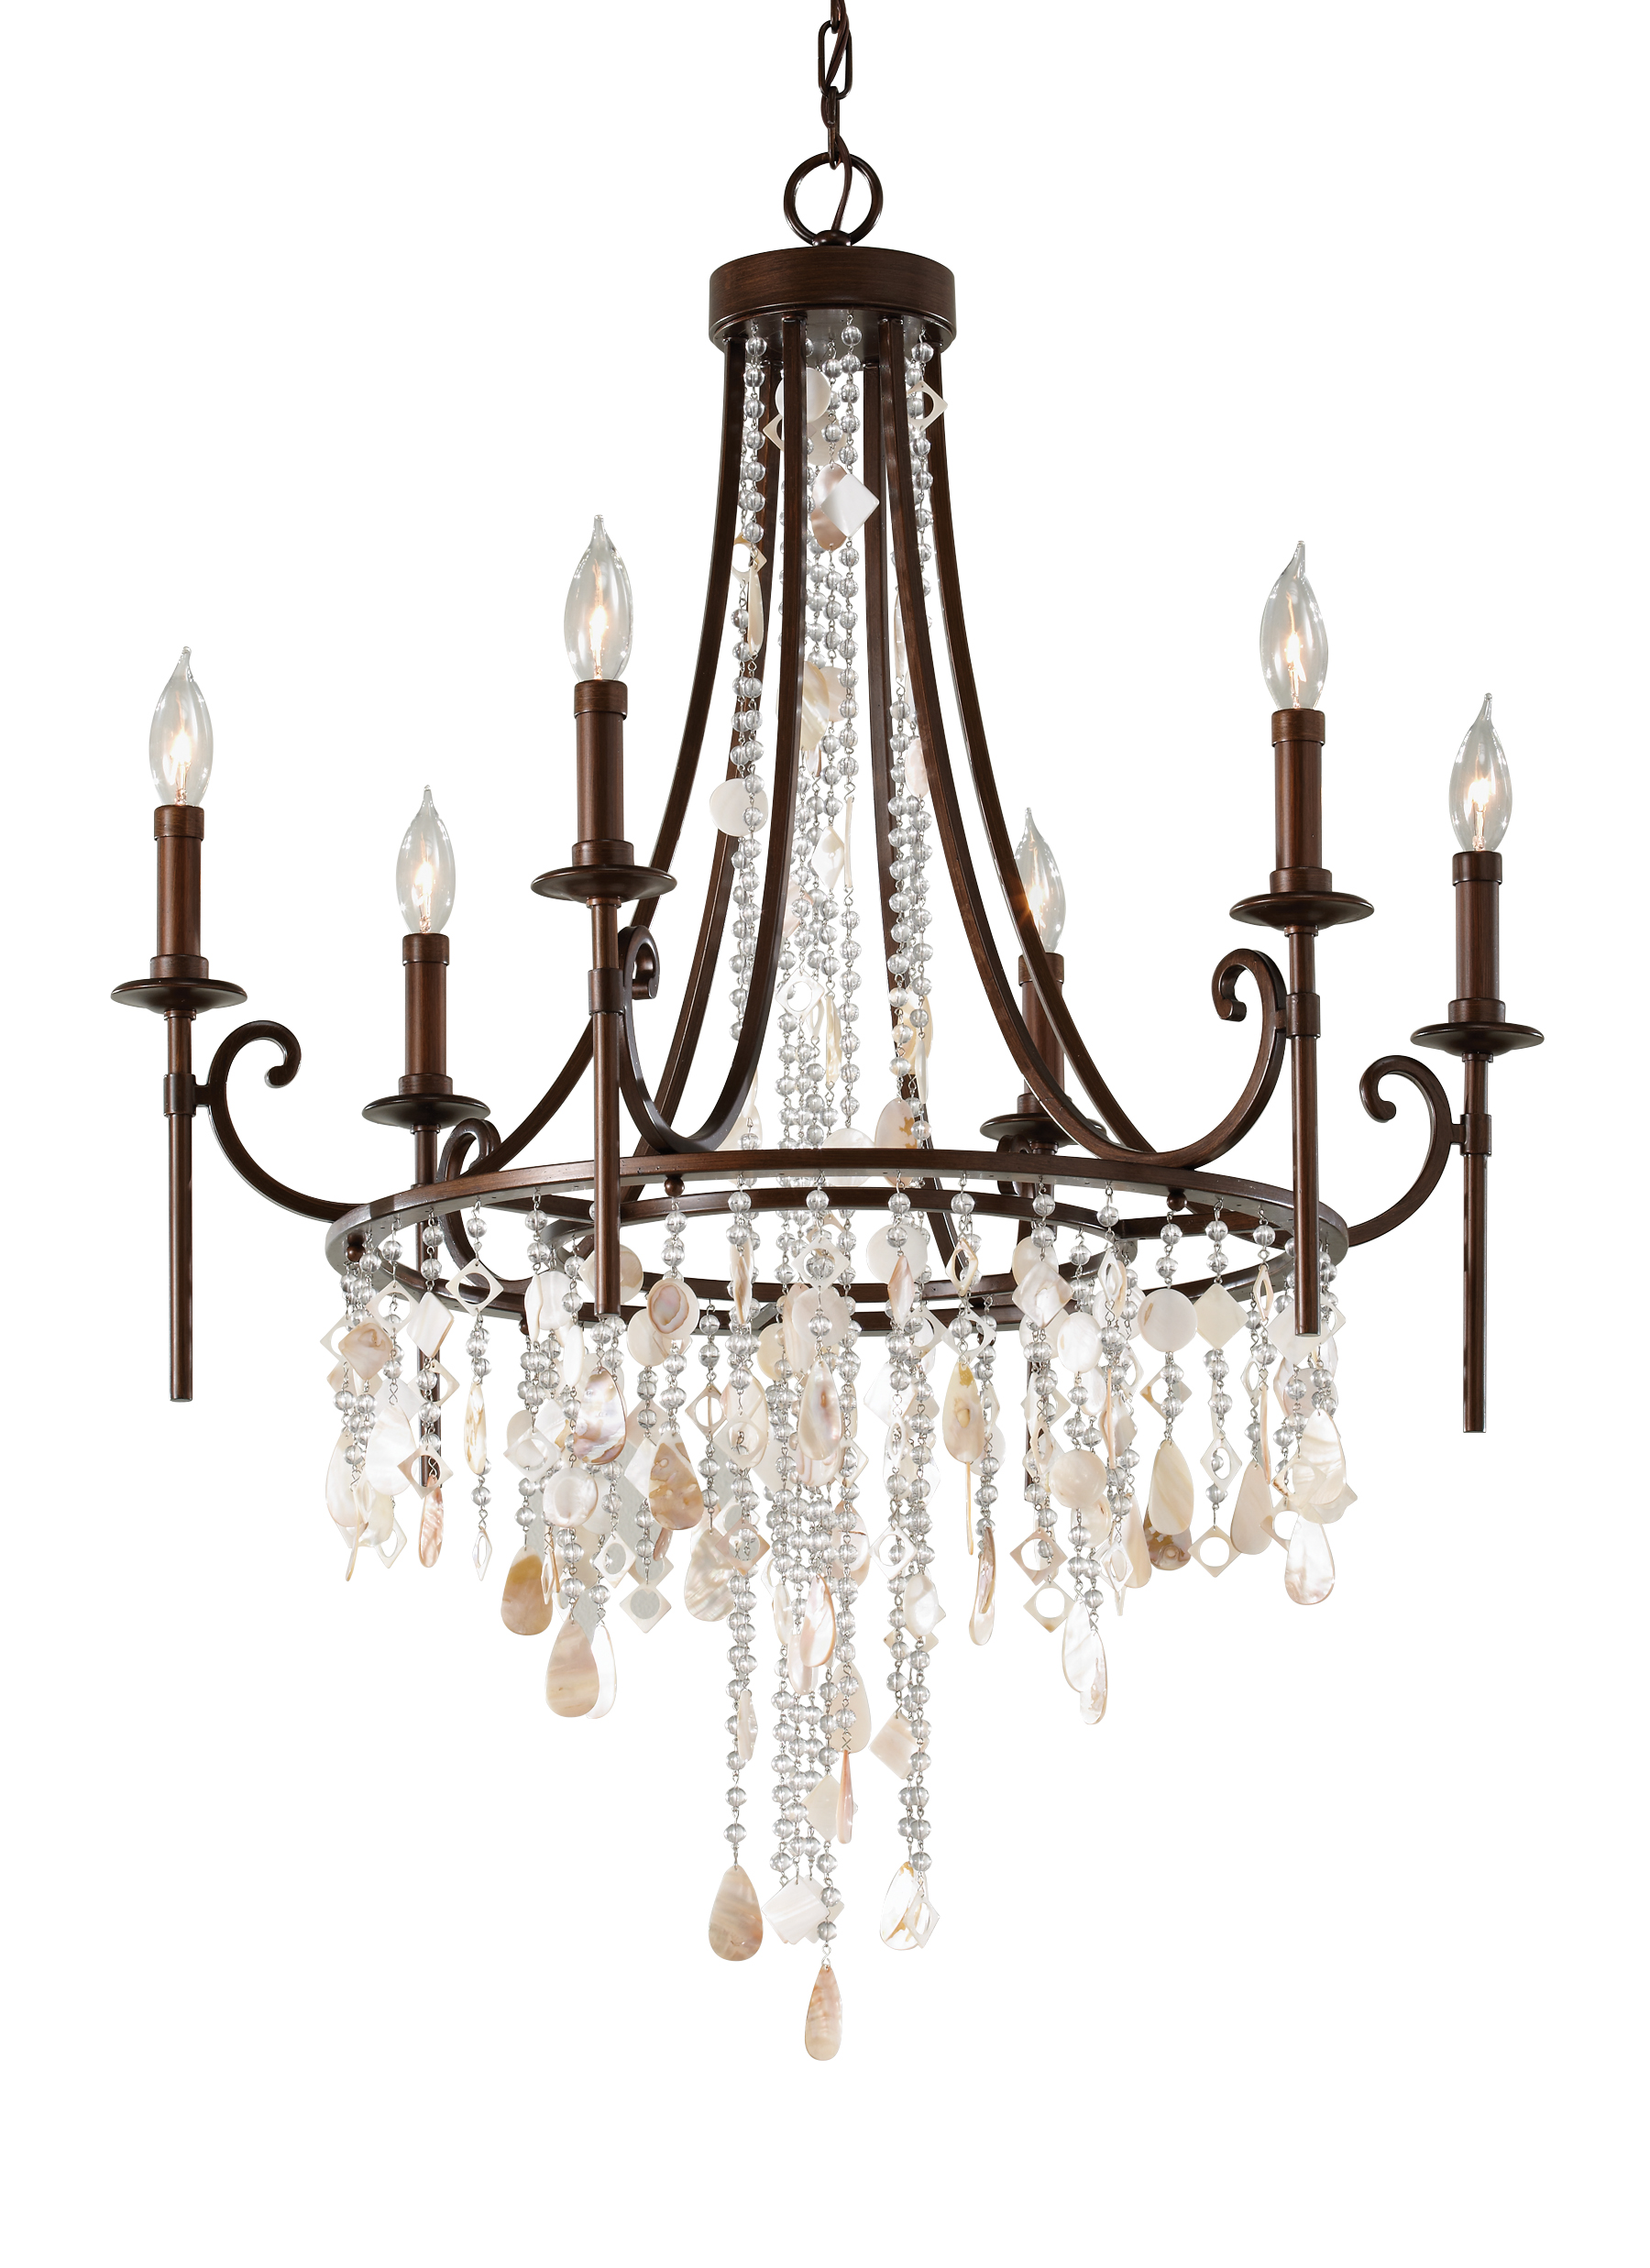 F26606htbz6 light single tier chandelierheritage bronze loading zoom mozeypictures Image collections